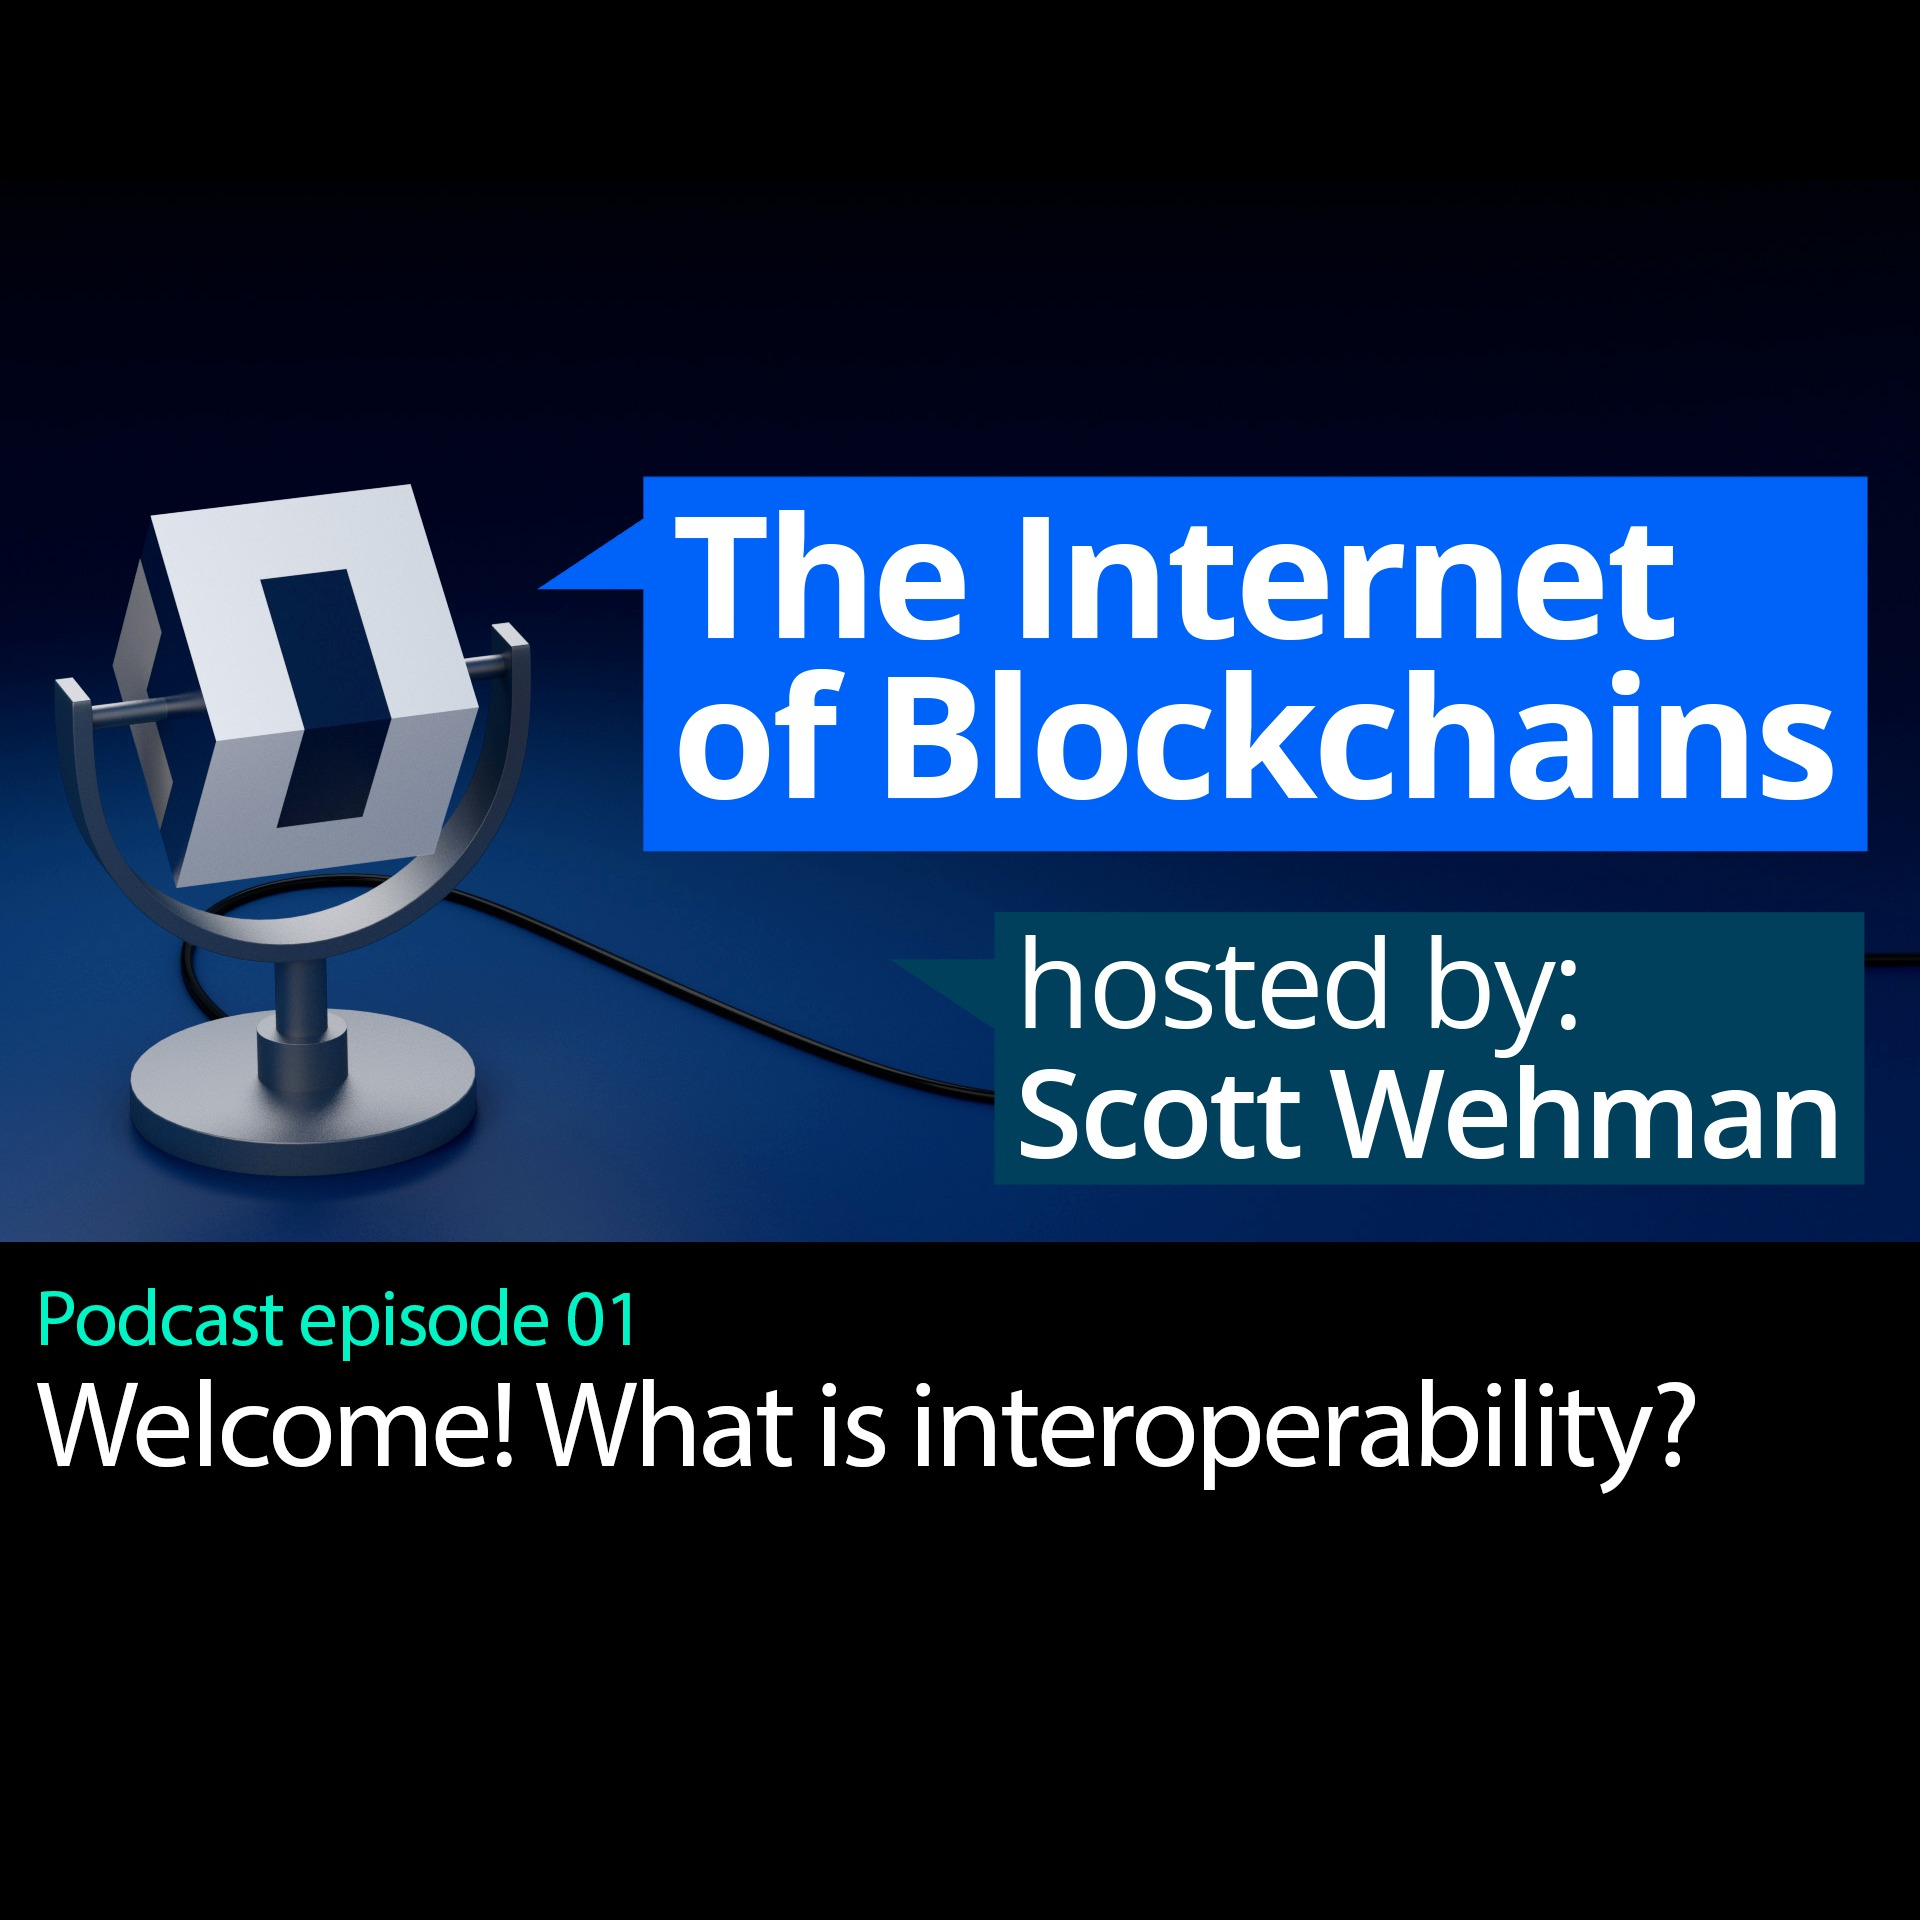 Episode 1 - Welcome! What is Interoperability?